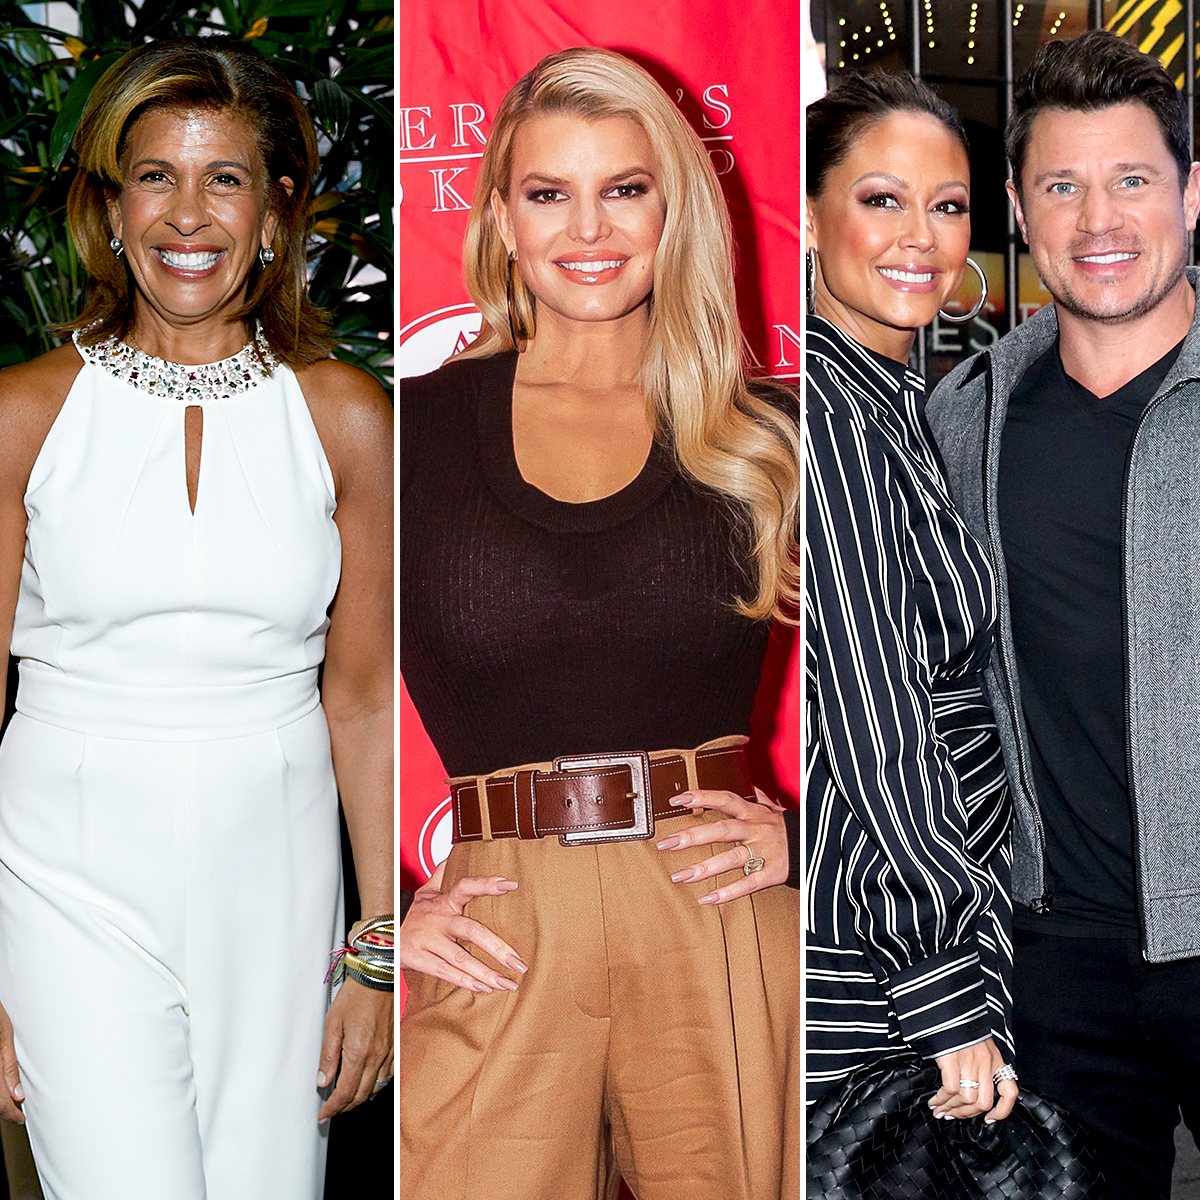 Hoda-Kotb-Is-Confused-By-Jessica-Simpson,-Nick-Lachey-and-Vanessa-Lachey-Gift-Drama